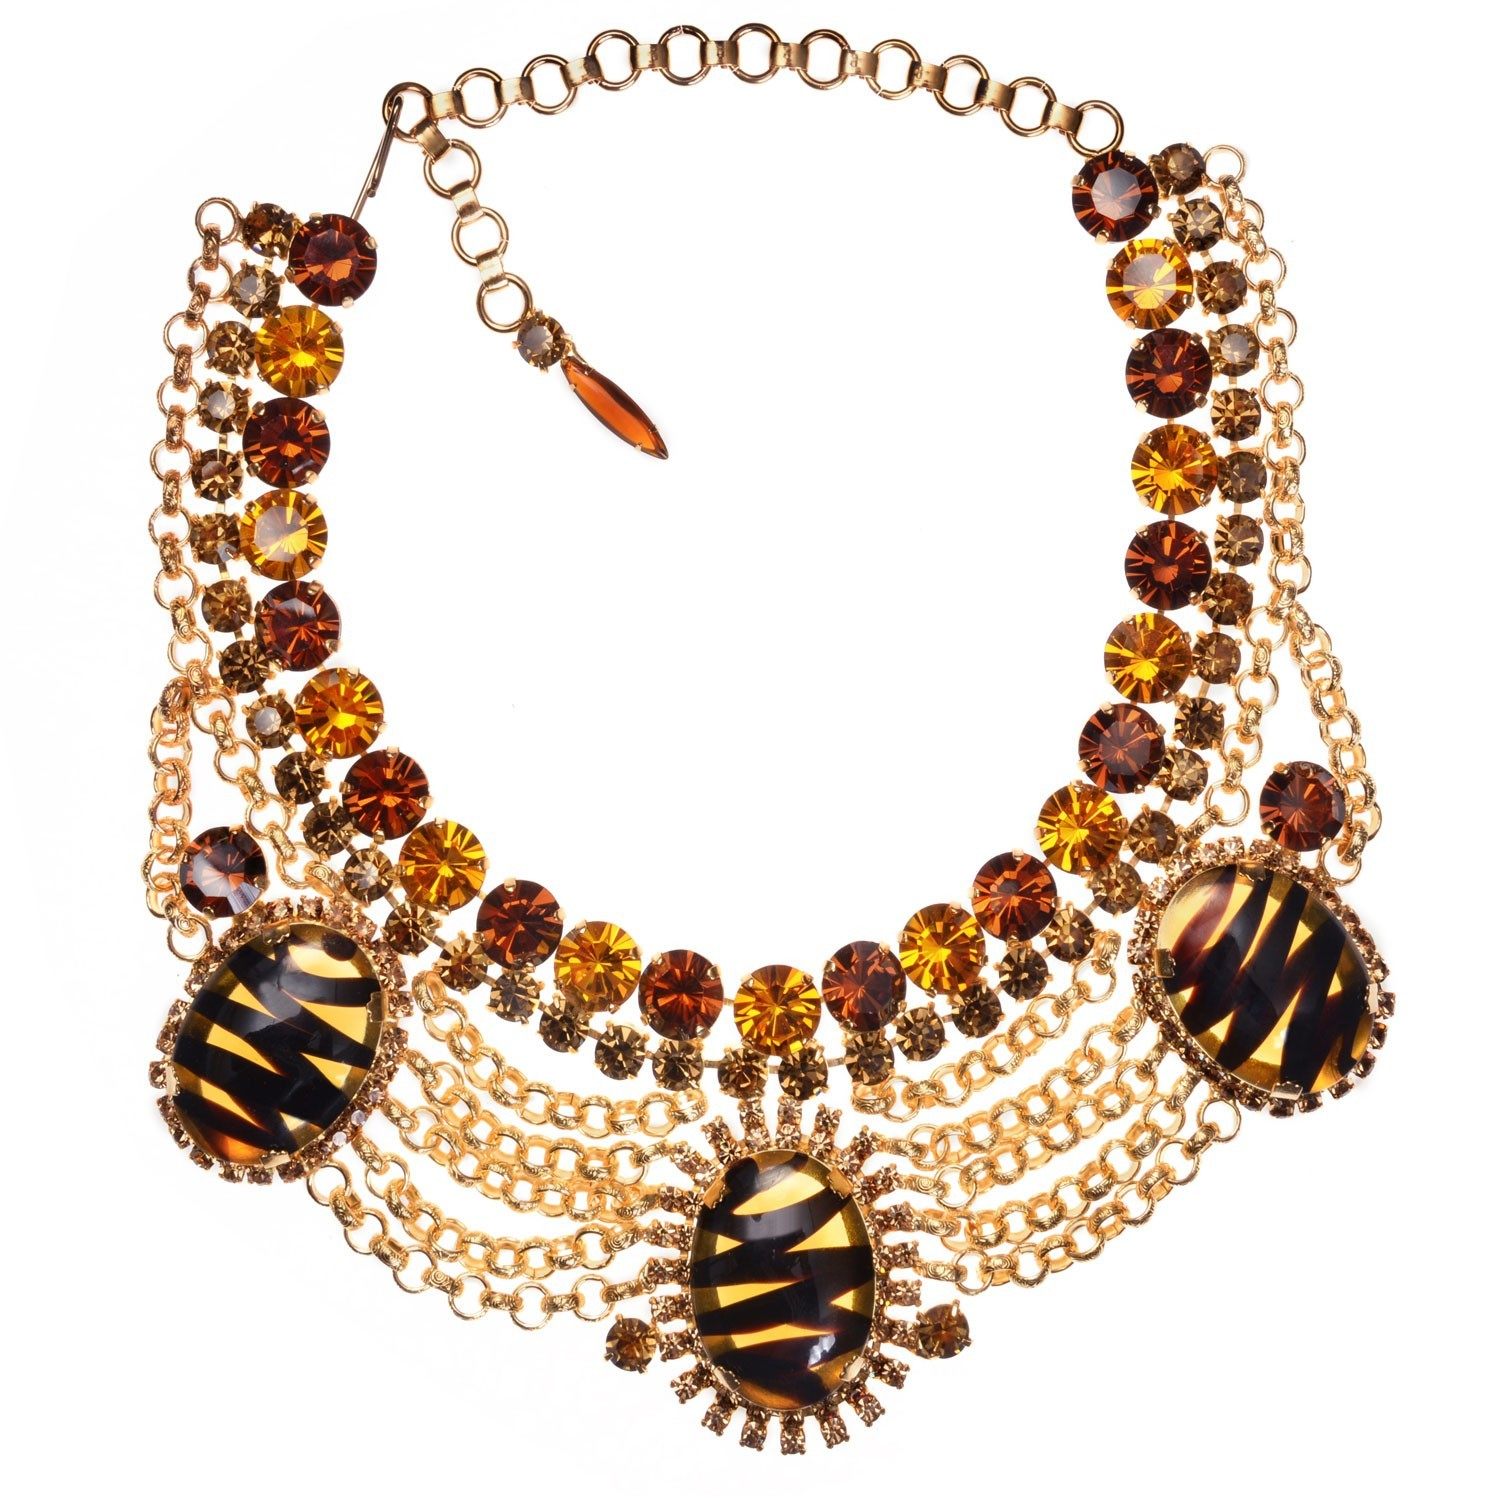 Topaz and Chain Bib Necklace ⋆ Jewels by Alan Anderson